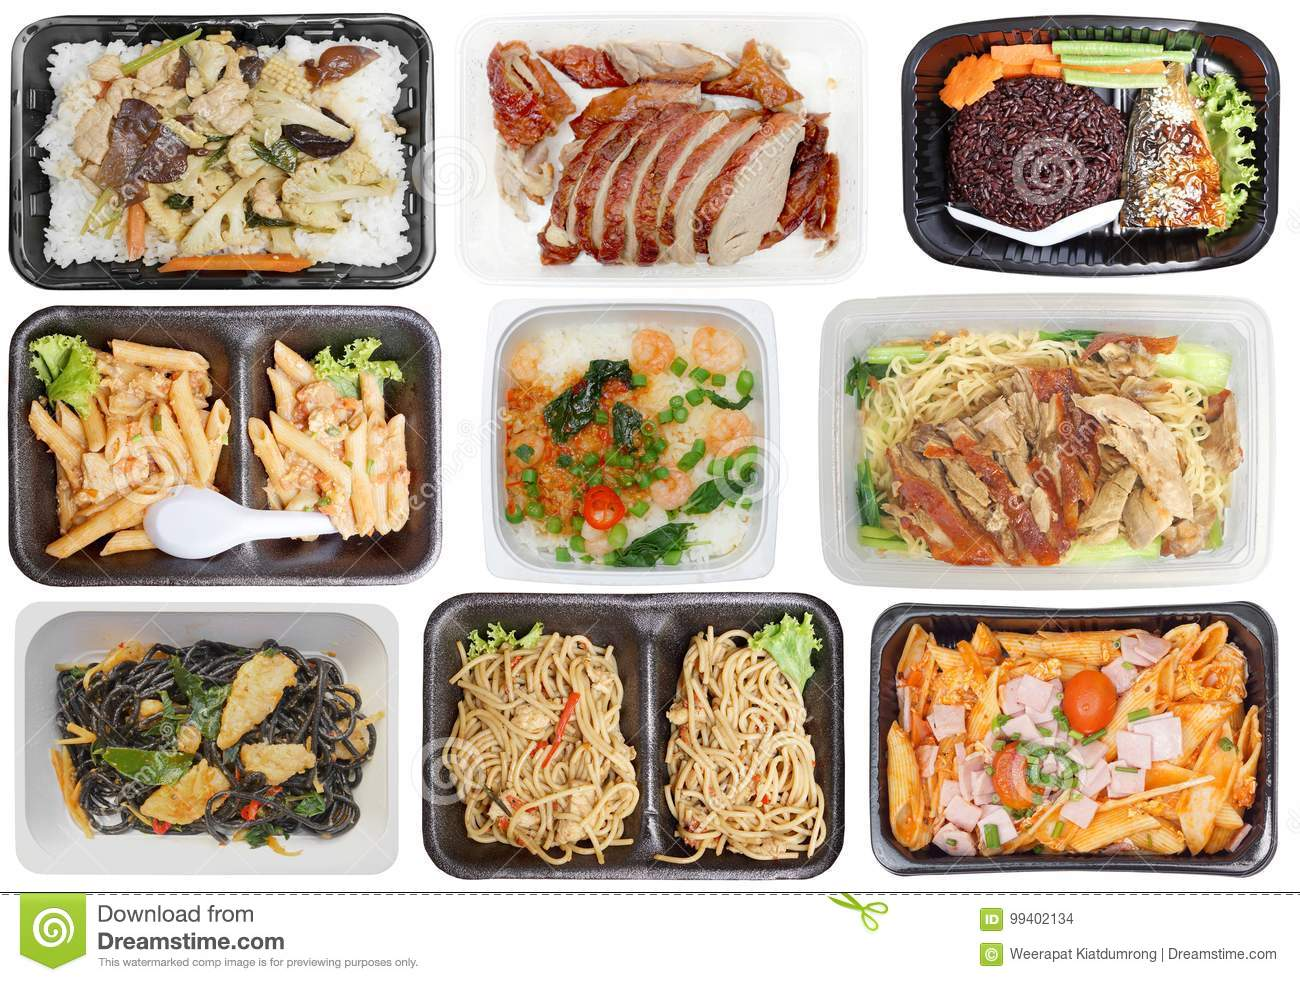 Takeaway Food In Microwavable Containers Stock Photo